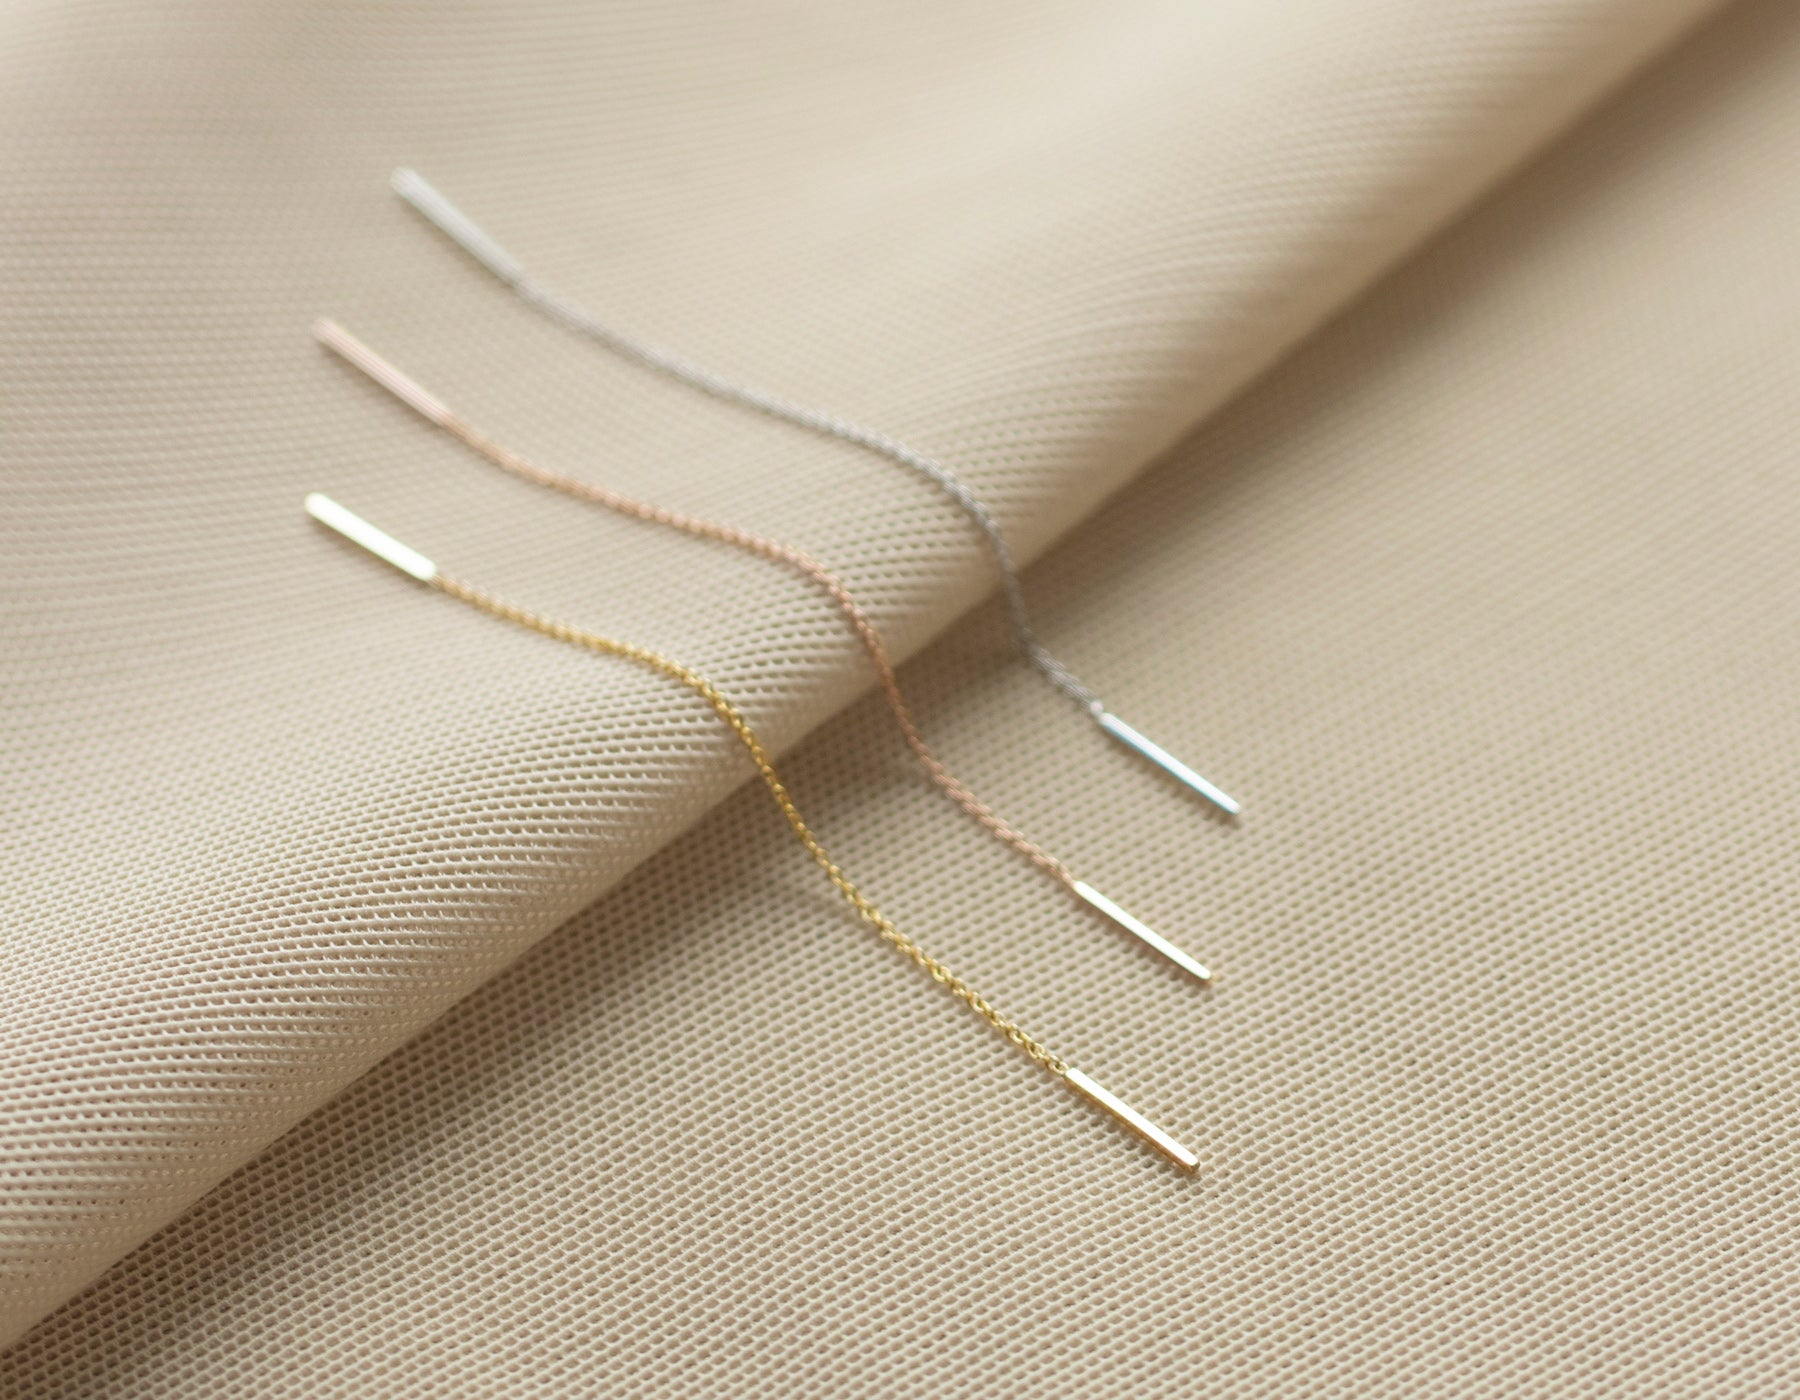 Single Simple dainty Line Threader earrings in 14K Solid gold white gold rose gold yellow gold